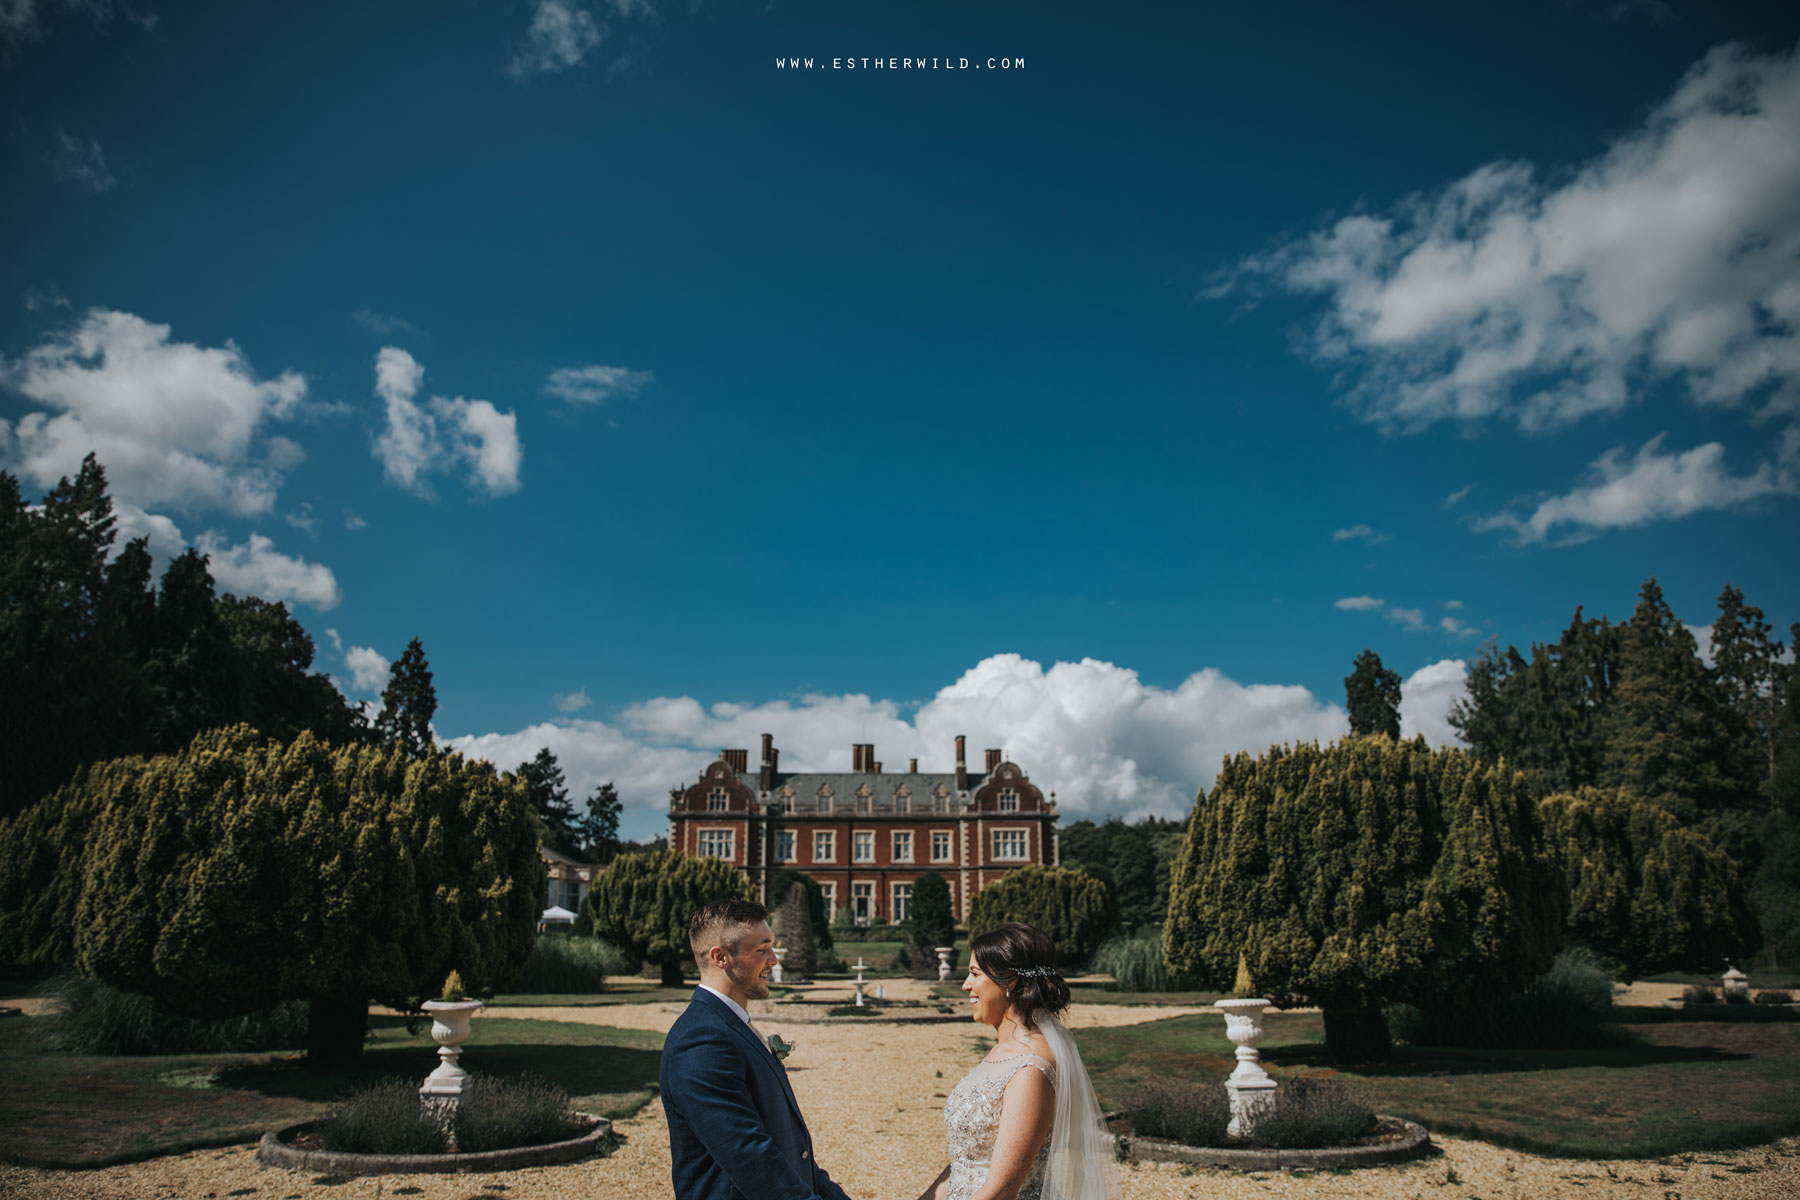 Lynford_Hall_Wedding_Thetford_Mundford_Esther_Wild_Photographer_IMG_1728.jpg